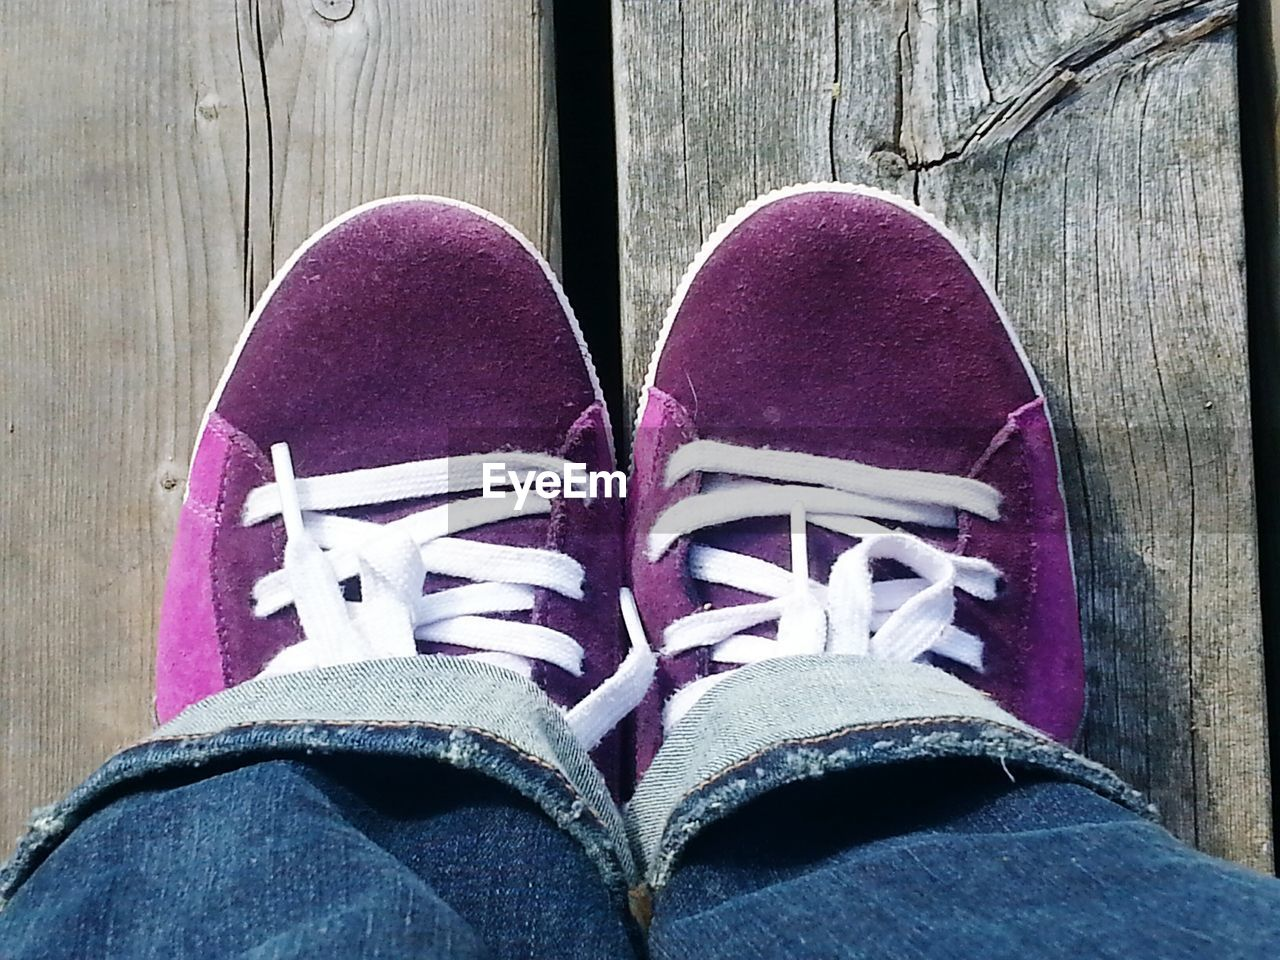 shoe, low section, one person, human leg, real people, standing, personal perspective, human body part, canvas shoe, pair, shoelace, casual clothing, lifestyles, indoors, men, close-up, day, people